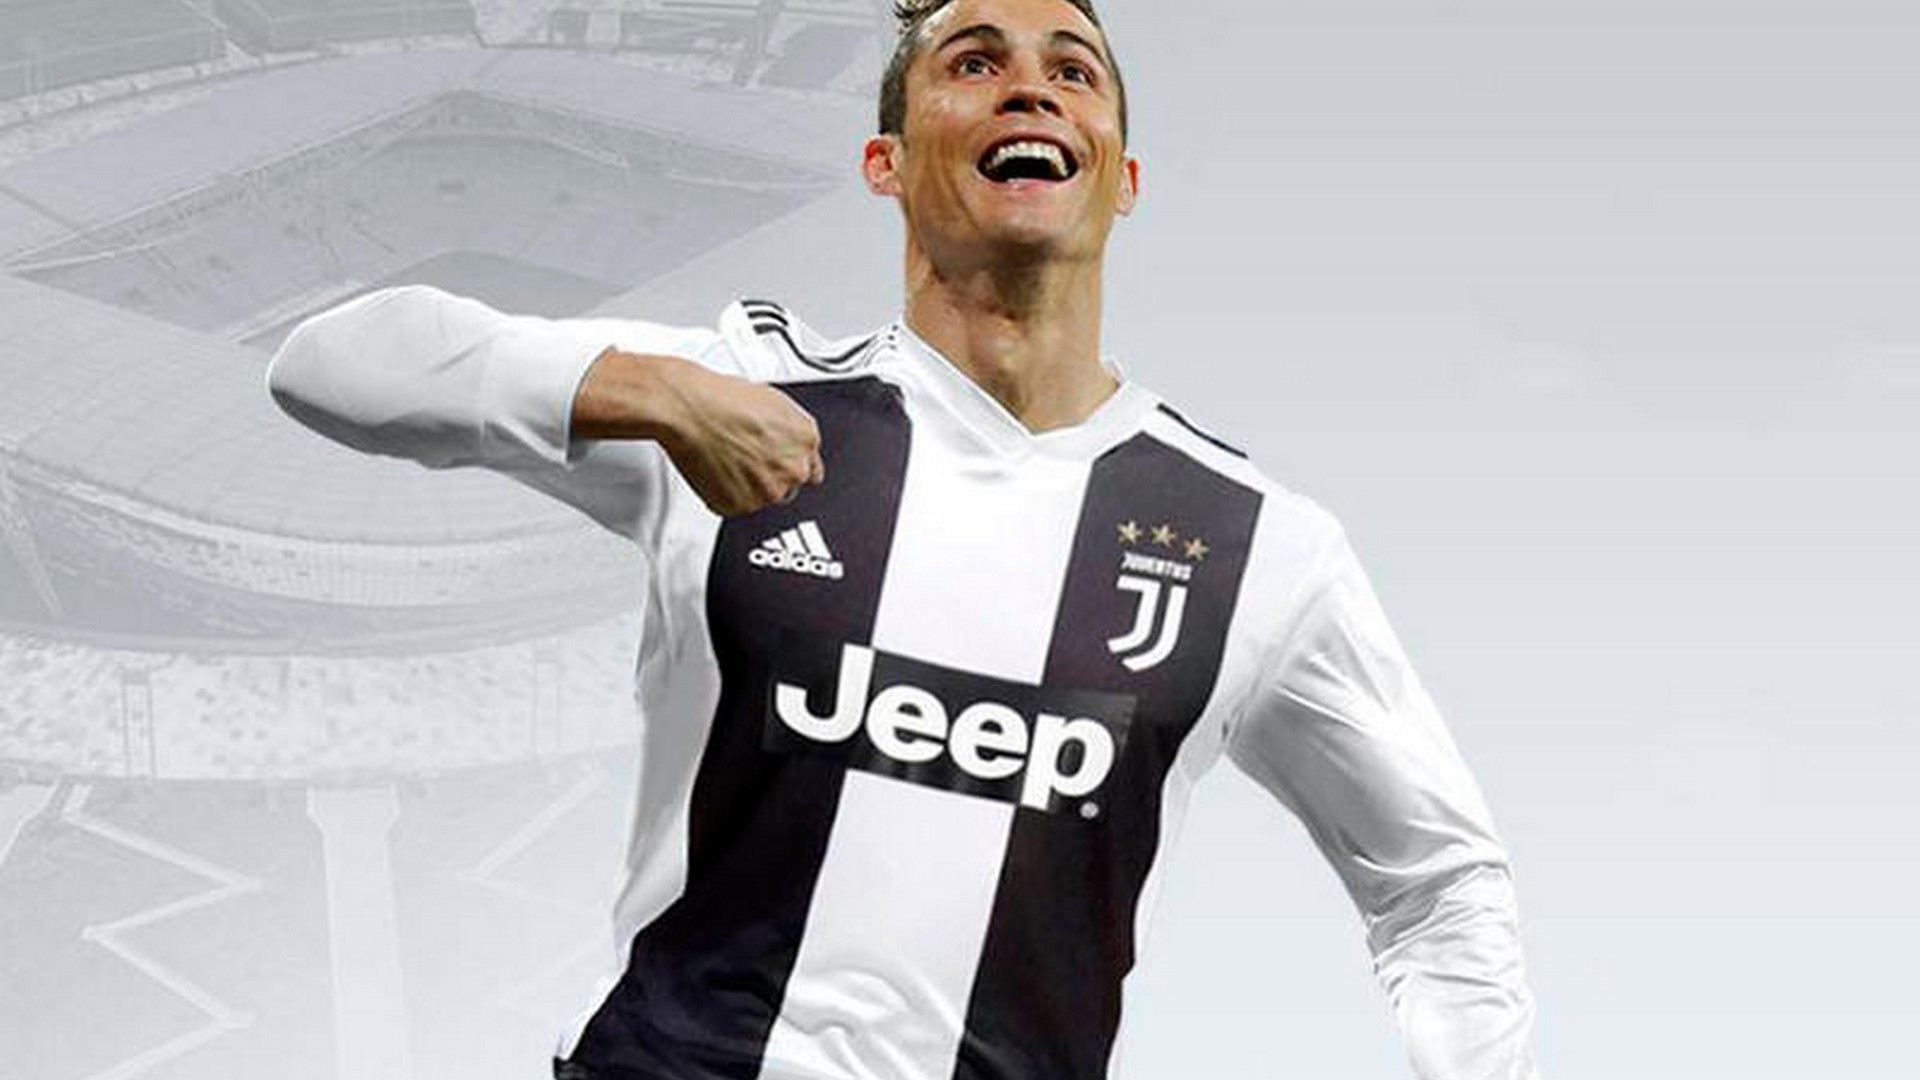 desktop wallpaper cr7 juventus with image resolution juventus cristiano ronaldo png 1920x1080 download hd wallpaper wallpapertip desktop wallpaper cr7 juventus with